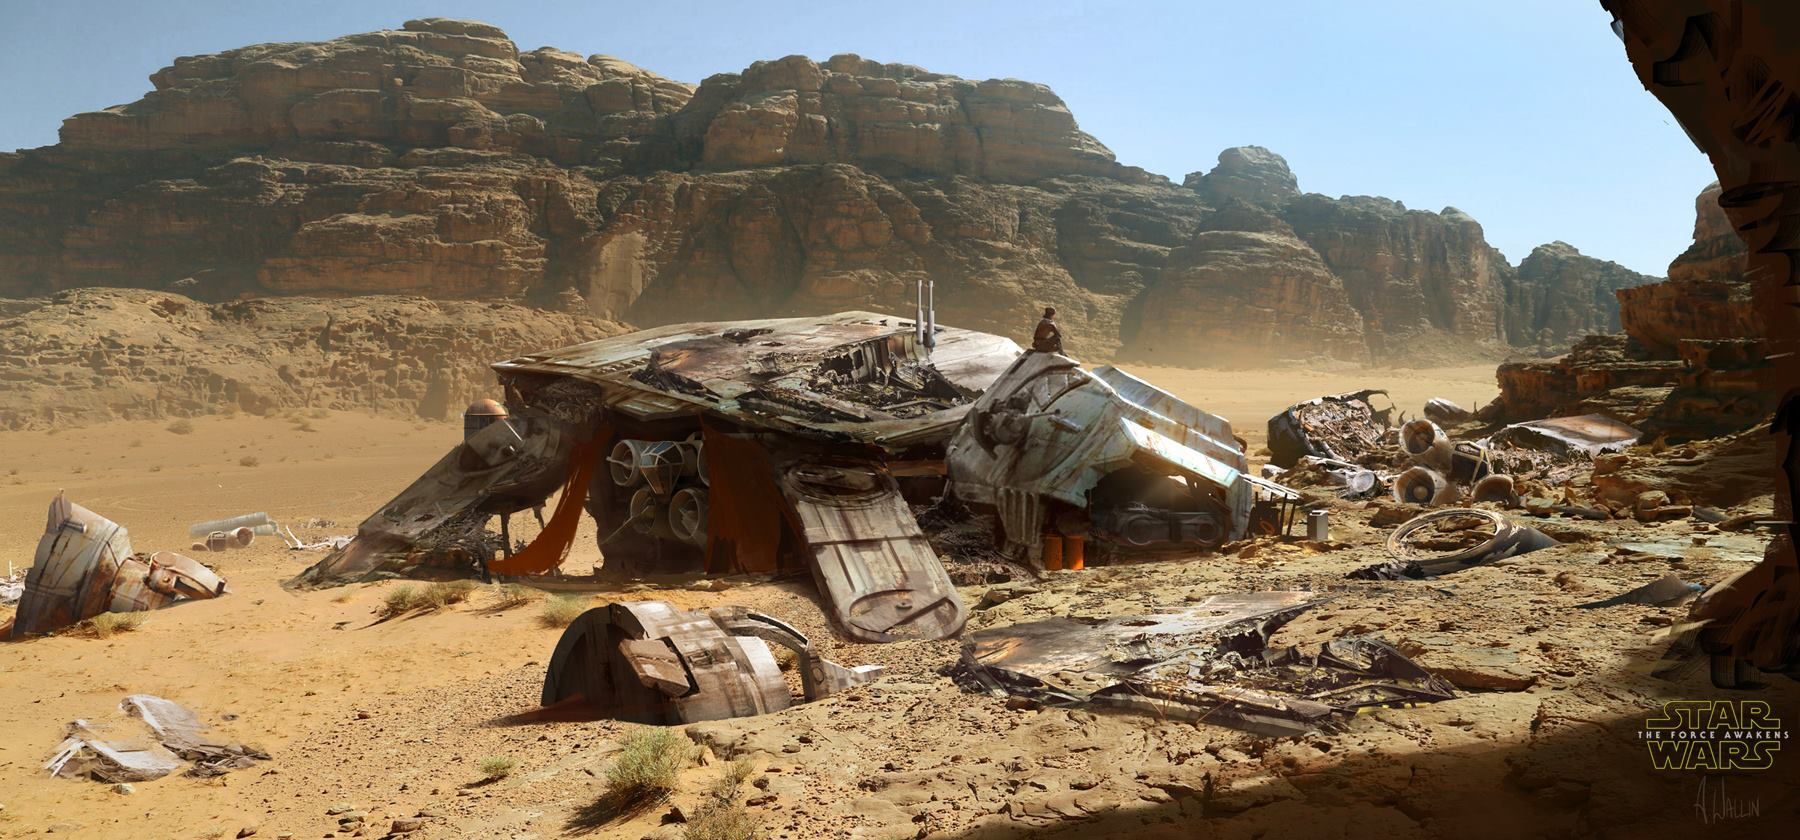 Star Wars: The Force Awakens Concept Art by Andrée Wallin ...